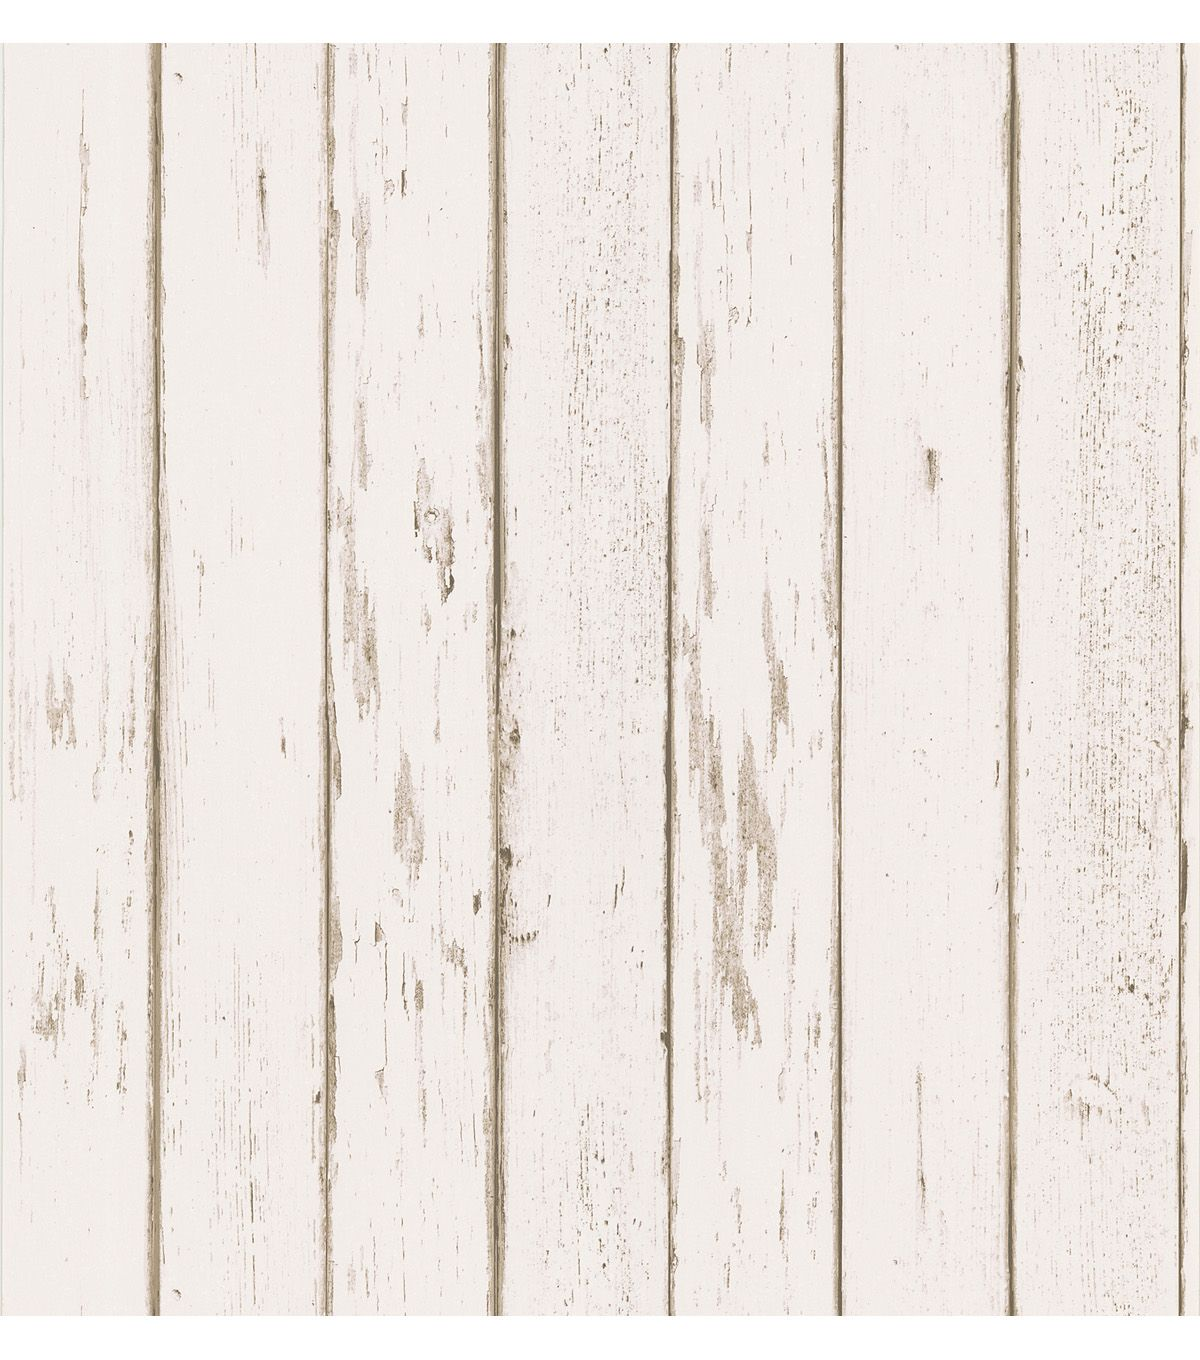 Yarmouth Cream Rustic Wood Paneling Wallpaper Wood Plank